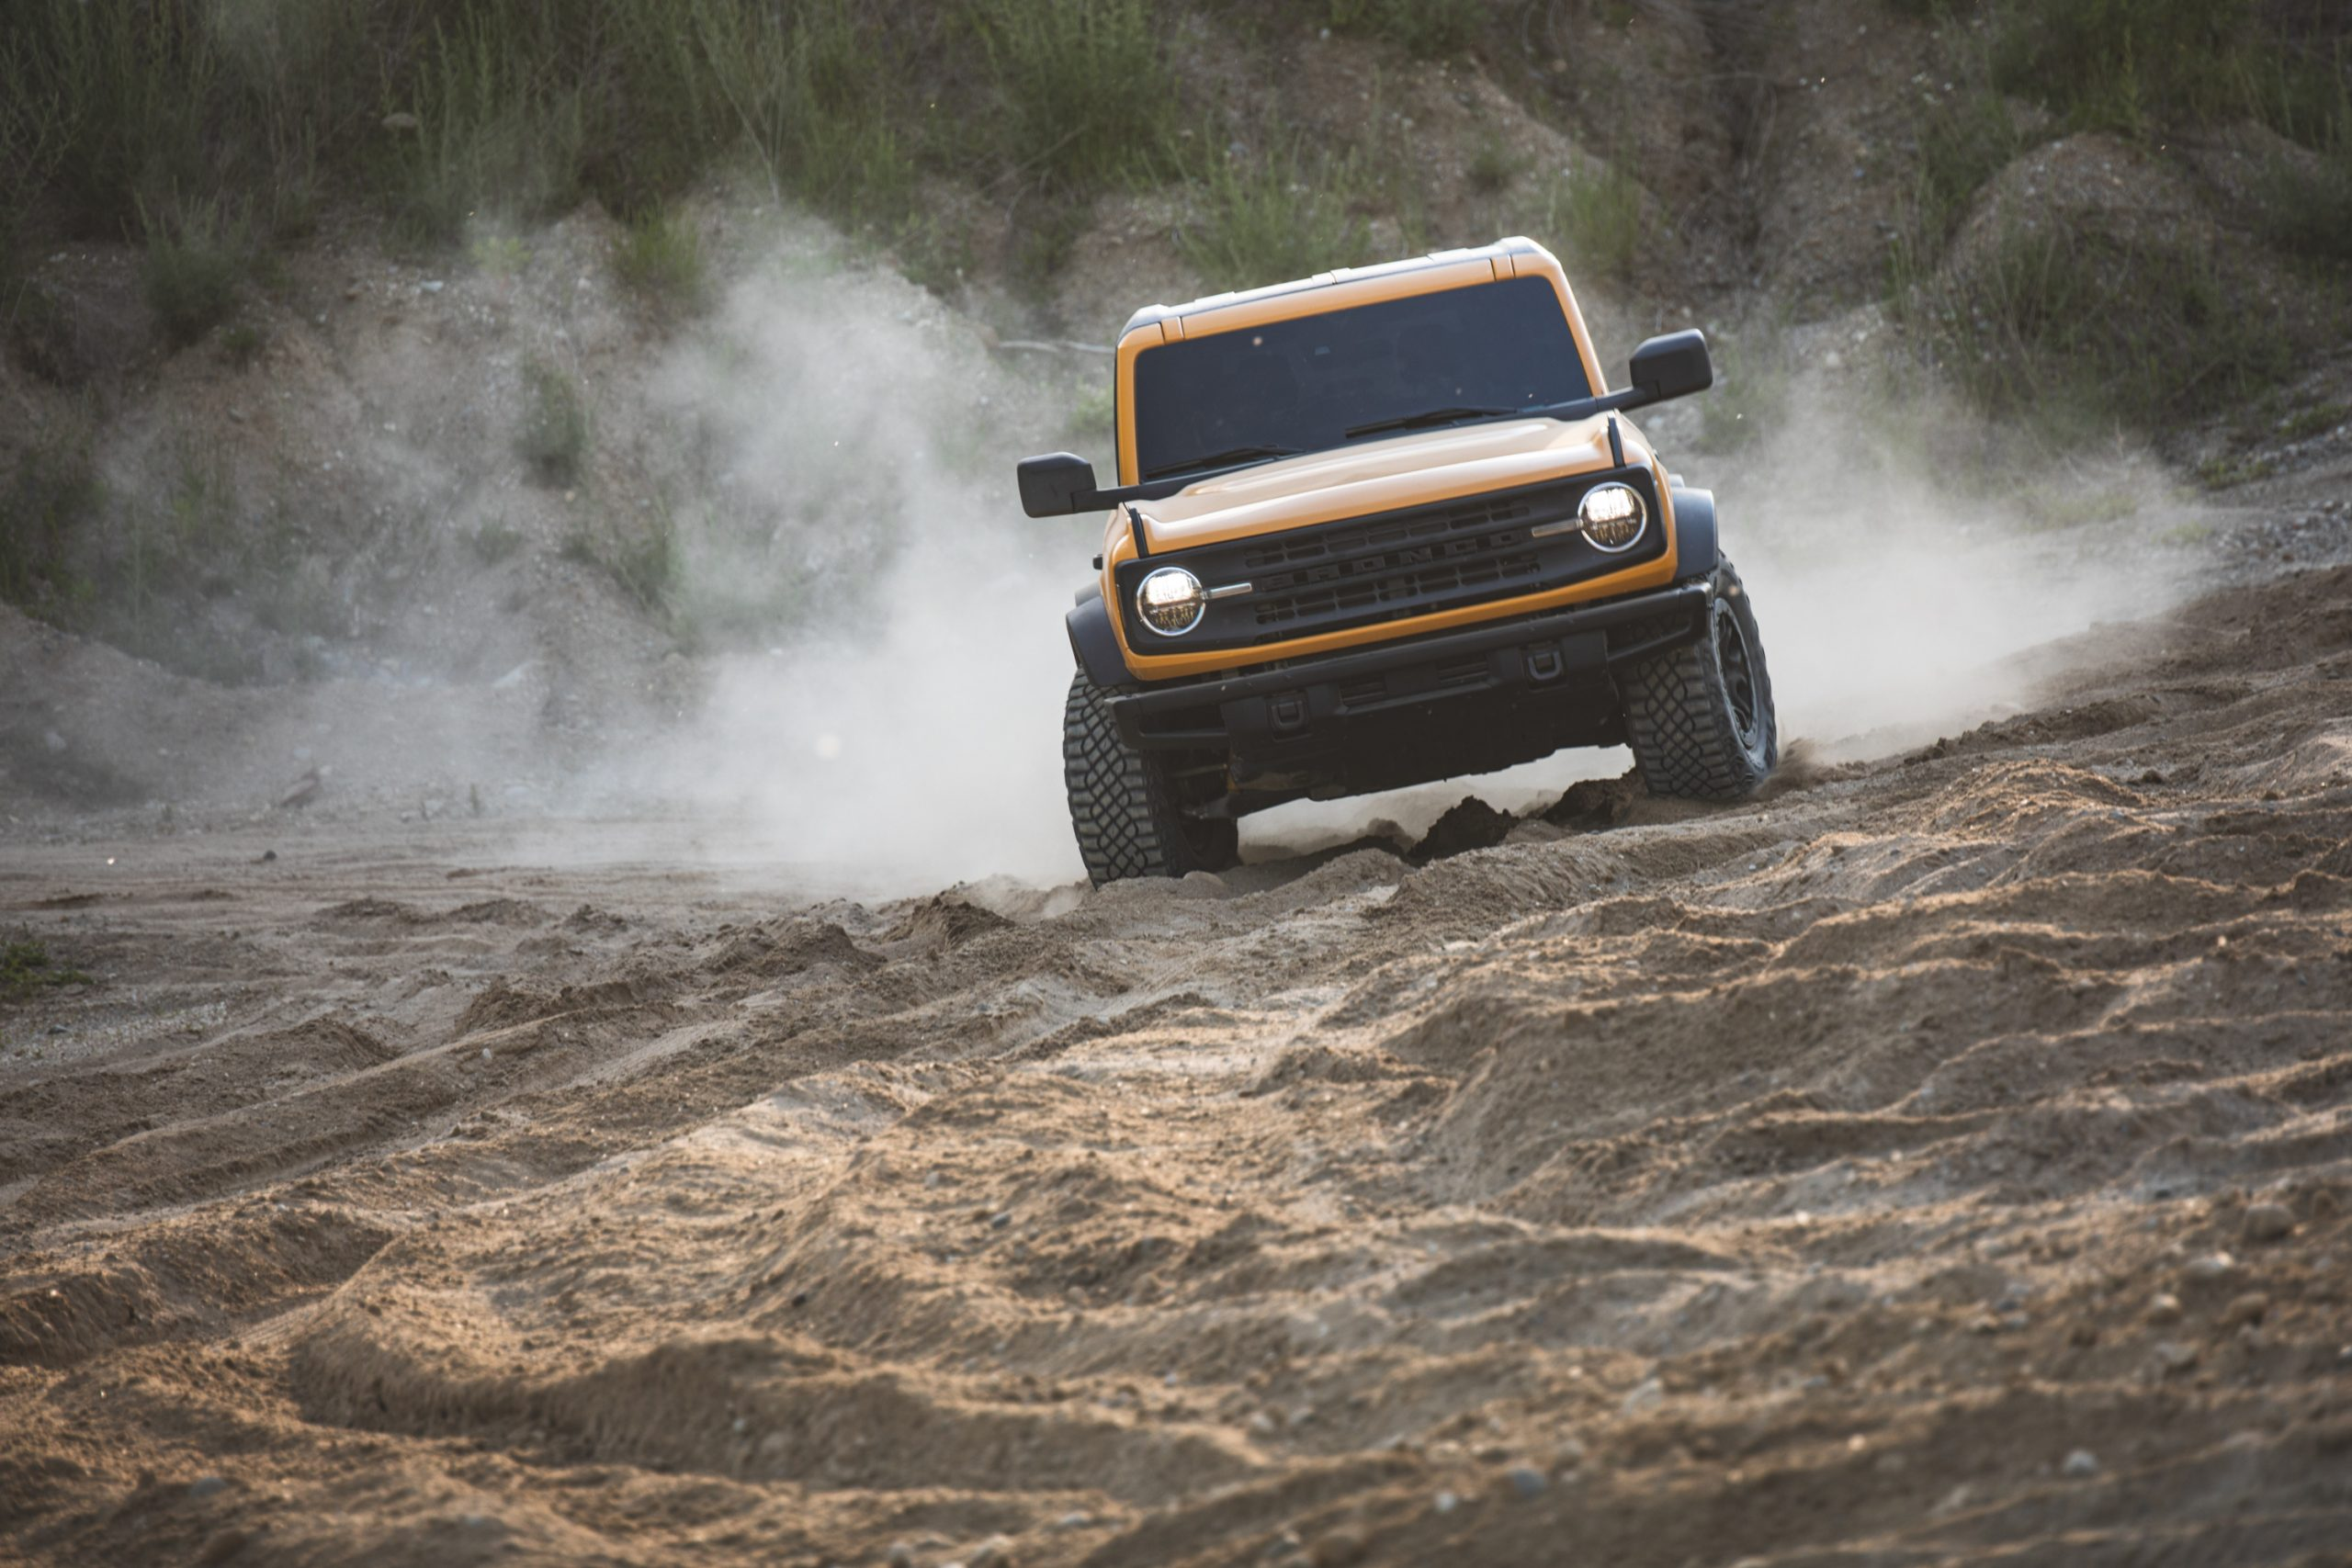 2021 Ford Bronco Two Door Front Sand Dune Action